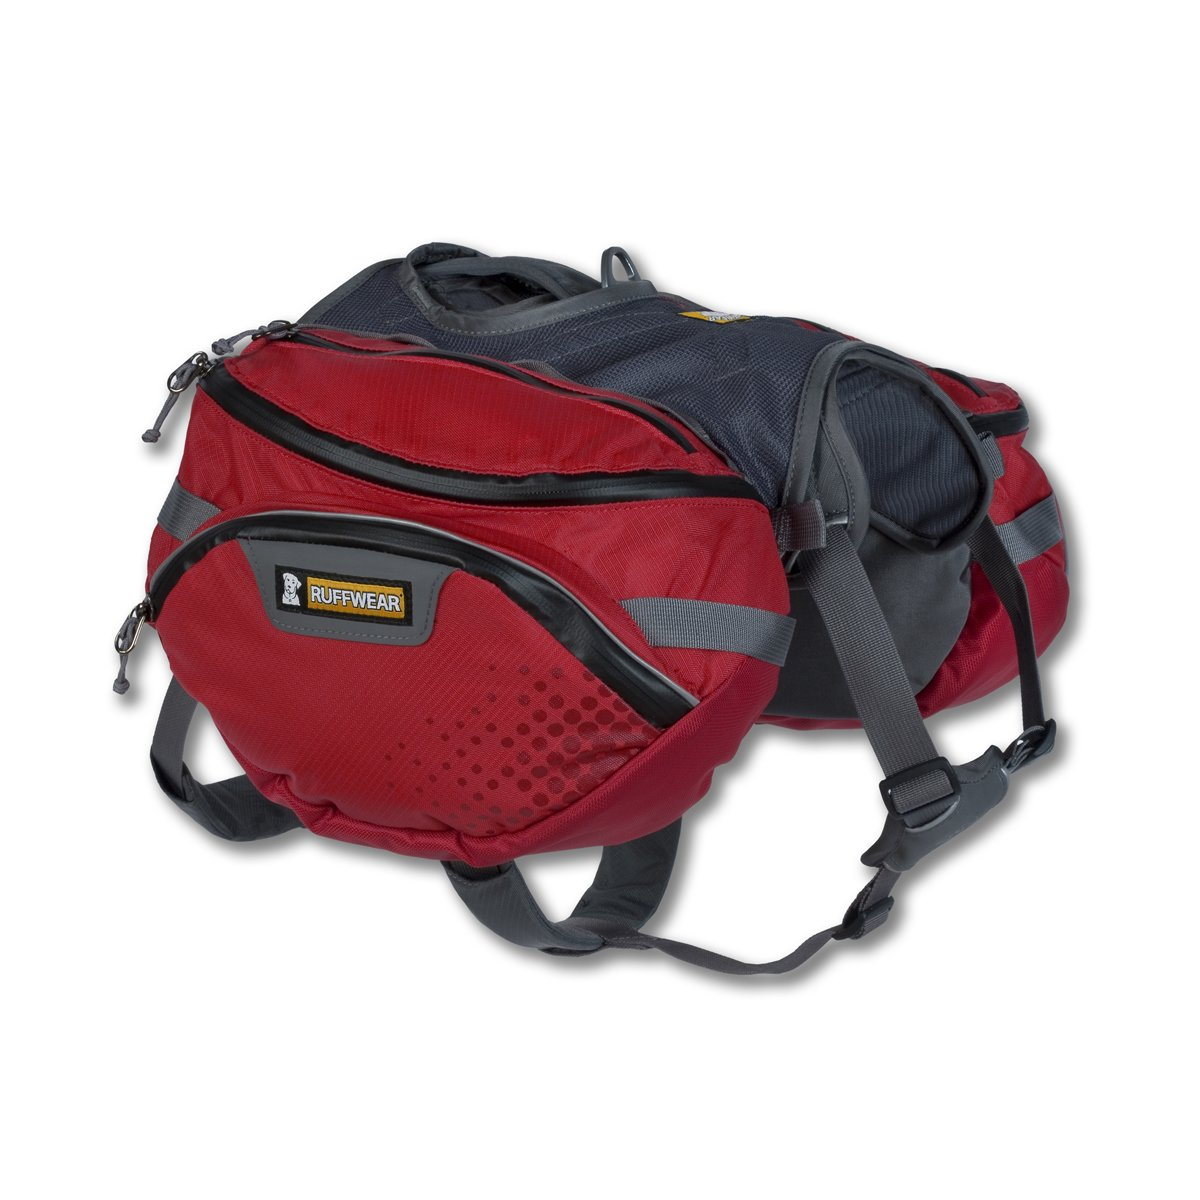 Ruffwear - Palisades Multi-Day Backcountry Pack for Dogs, Red Currant, Small